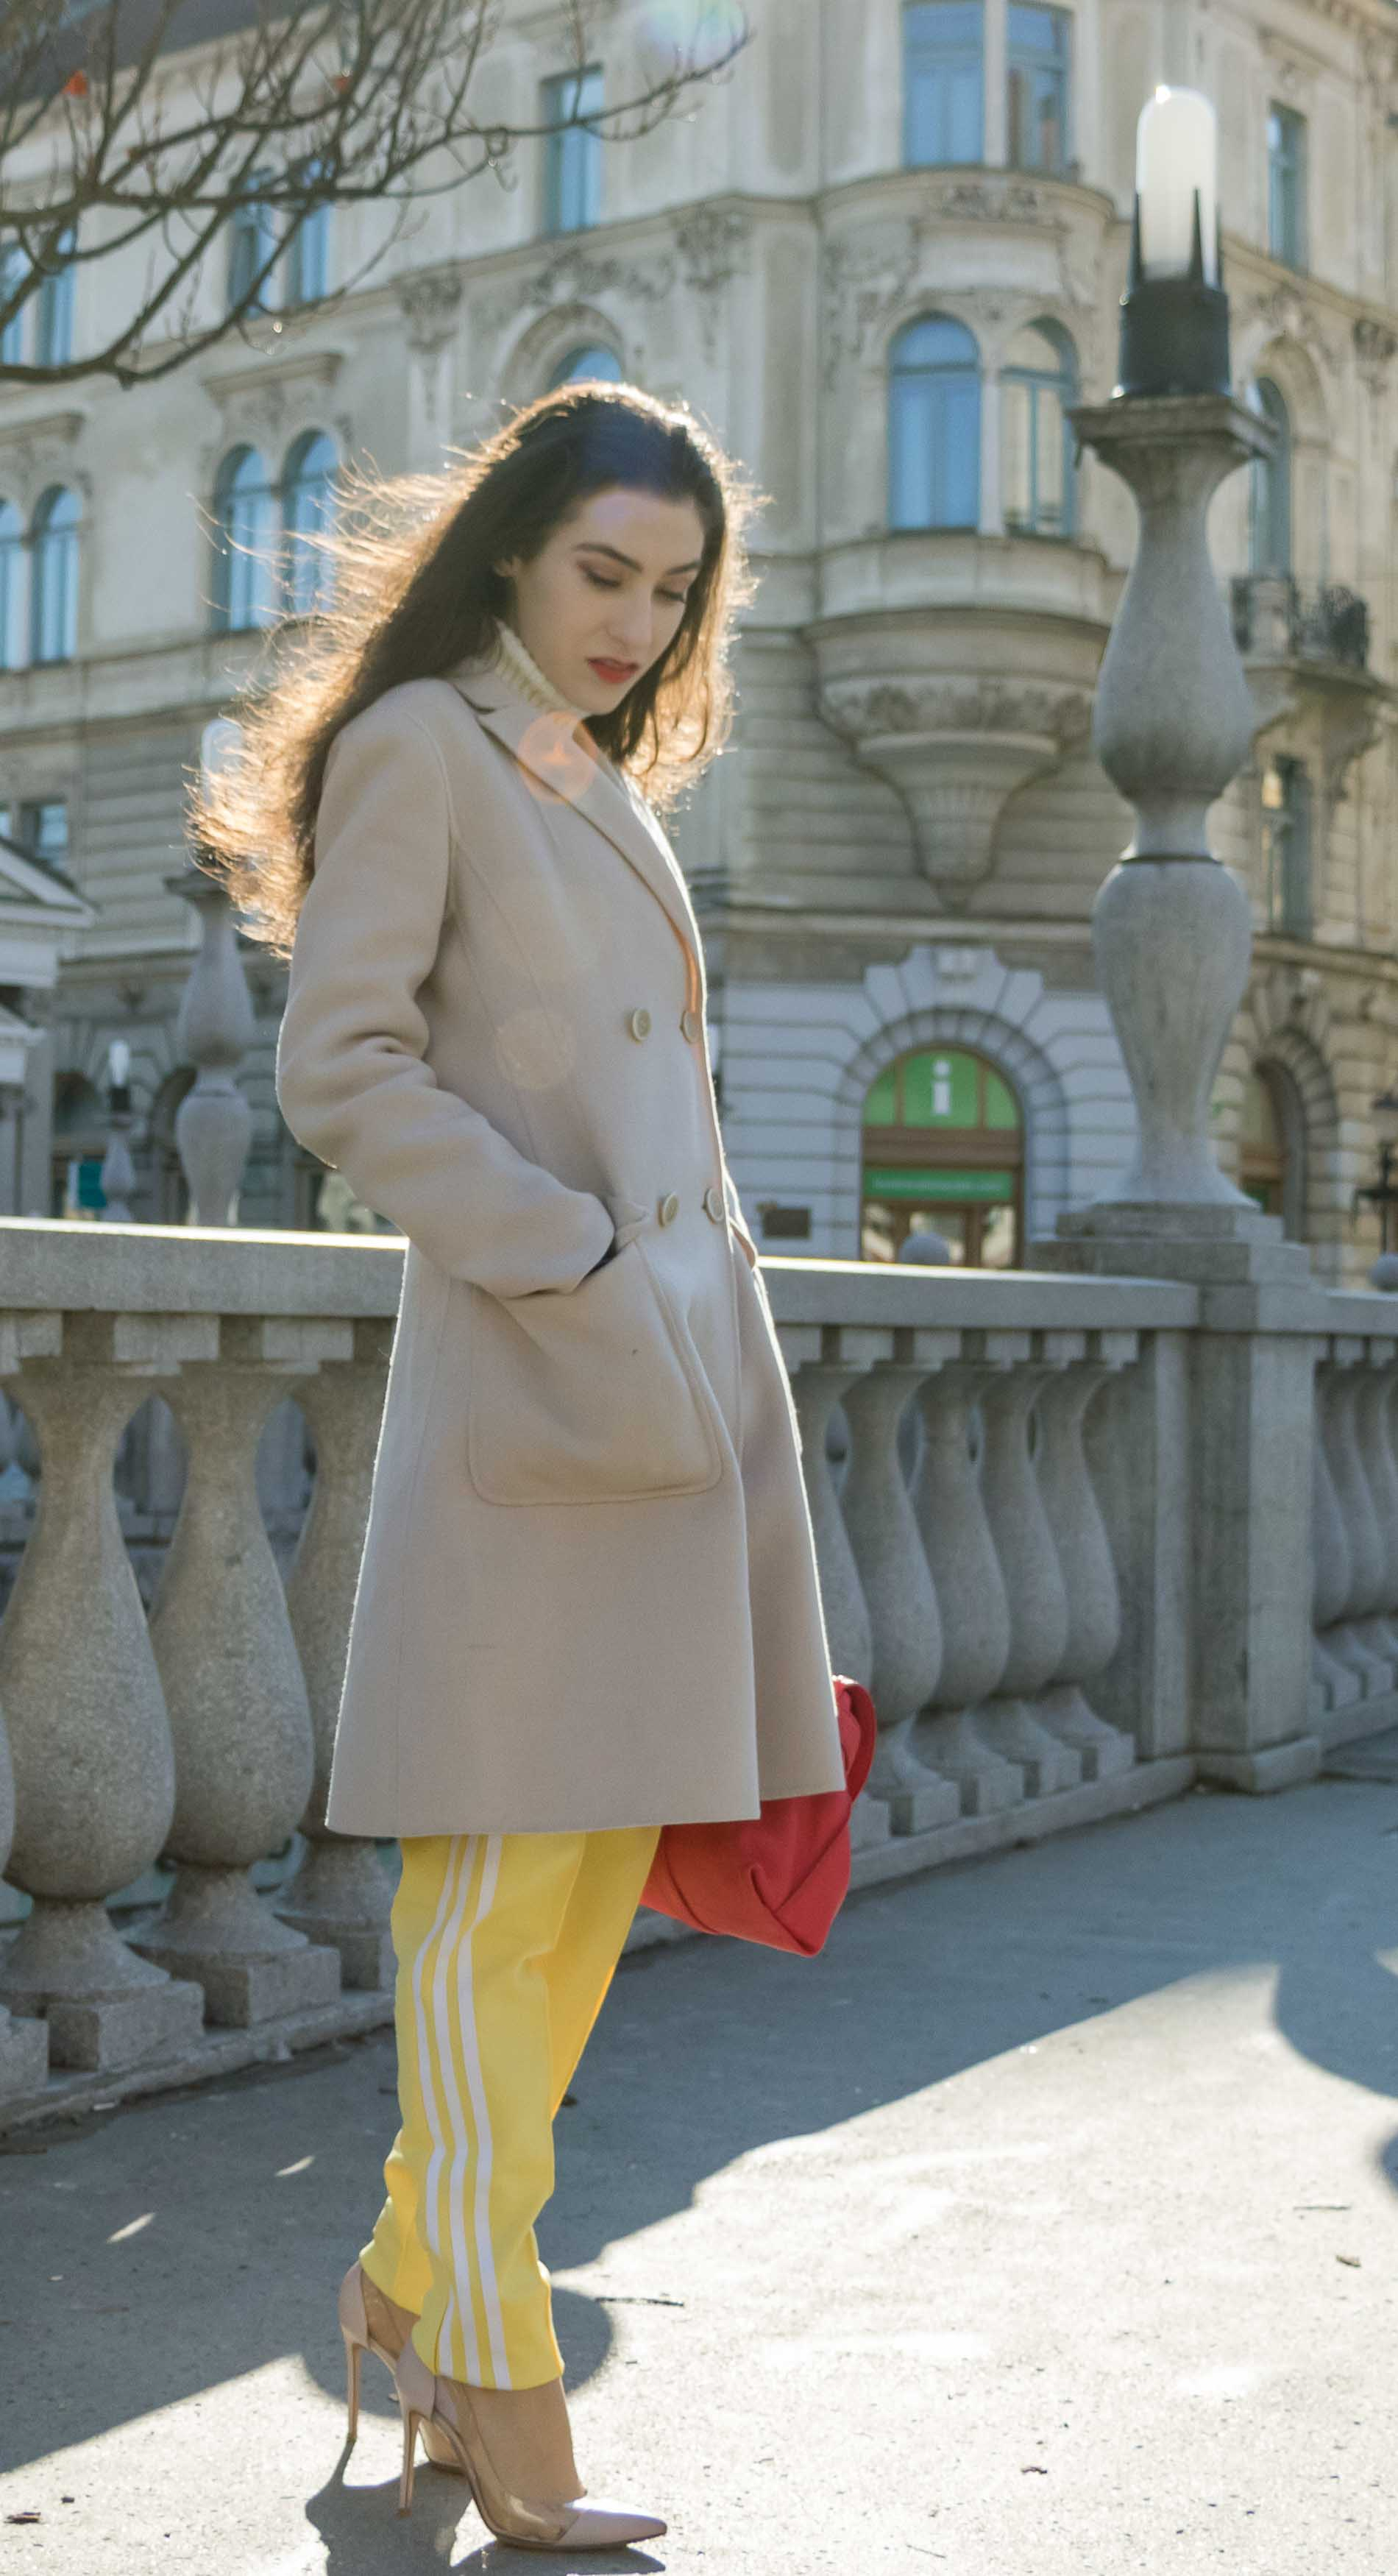 Fashion Blogger Veronika Lipar of Brunette from Wall Street wearing yellow track pants with white stripes from Adidas, white turtleneck knit sweater, off-white pastel double breasted coat from Weekend Max Mara, blush powder transparent plexi pumps shoes from Gianvito Rossi, pink top handle bag from See by Chloe while standing on the street in Ljubljana on a cold spring day